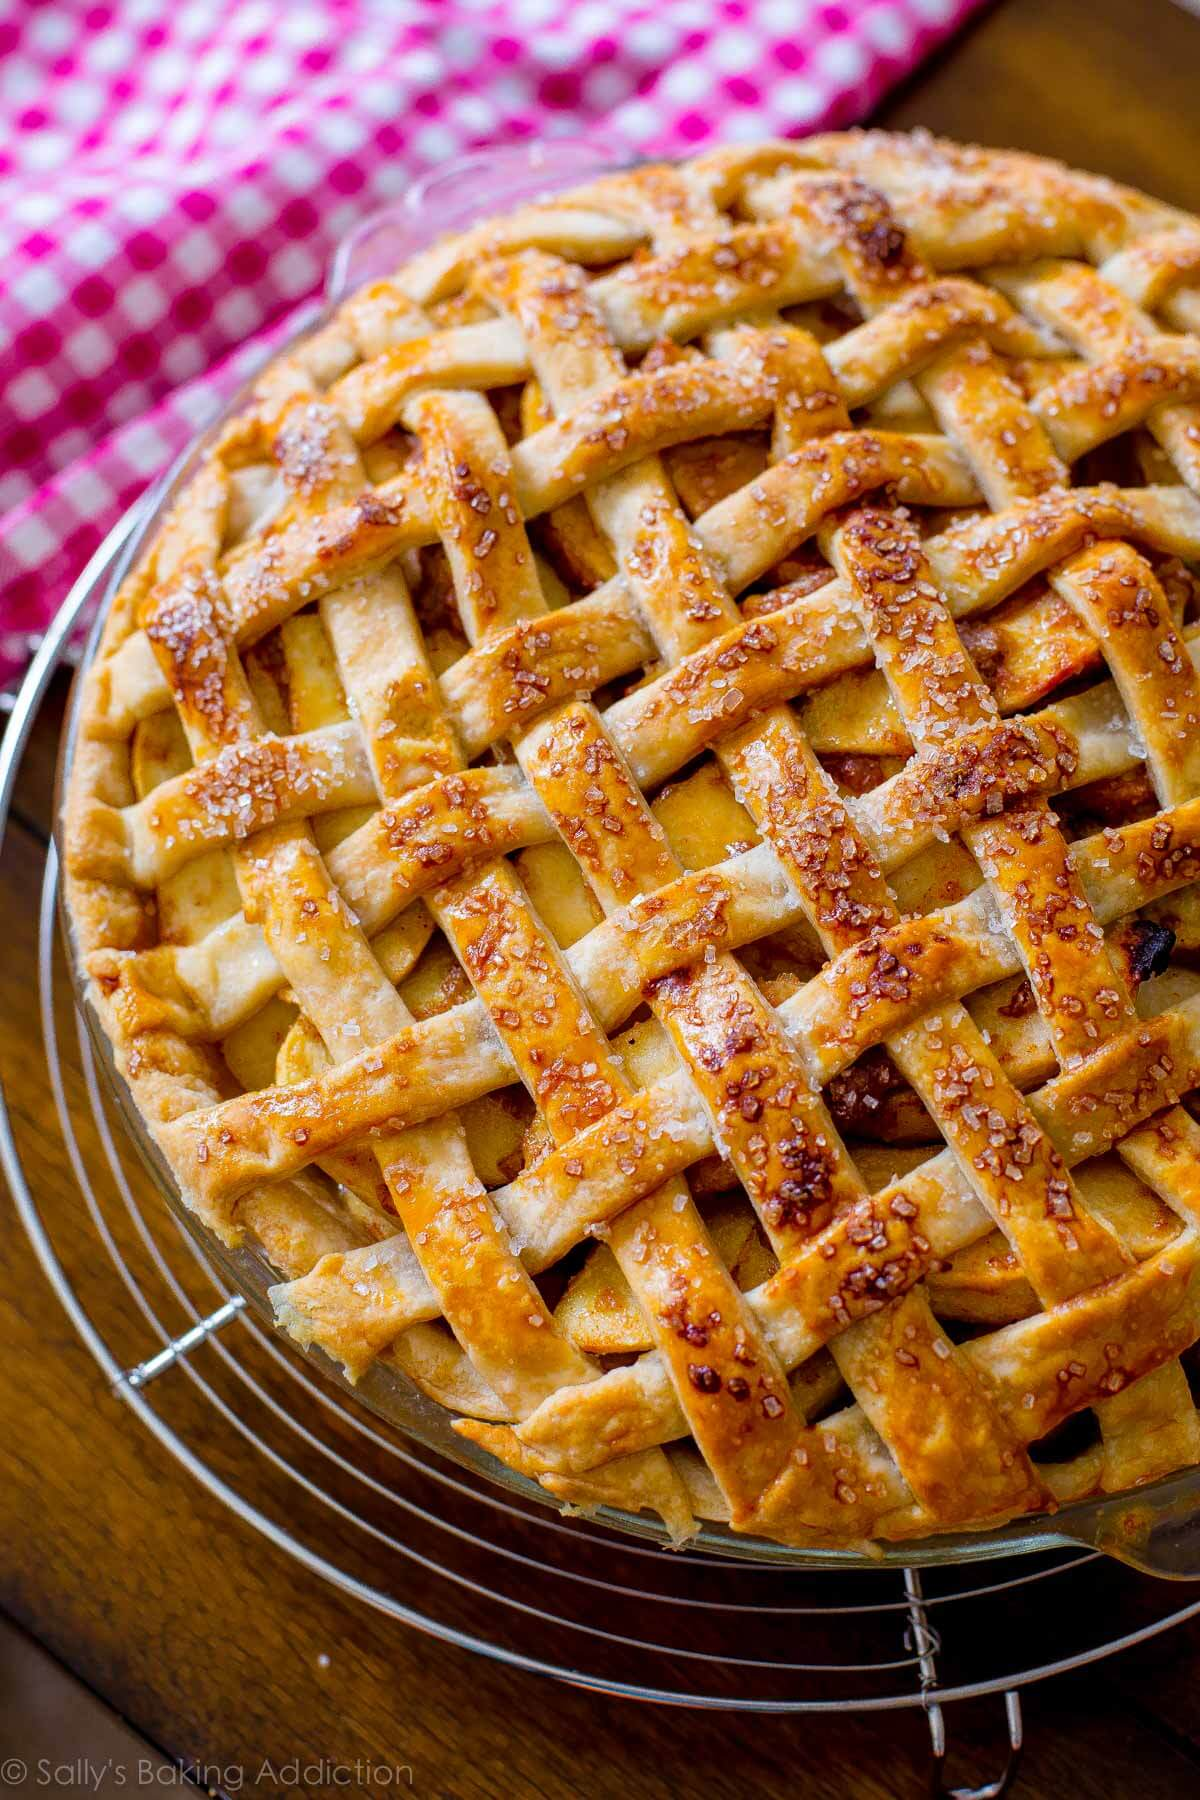 Salted caramel apple pie on sallysbakingaddiction.com